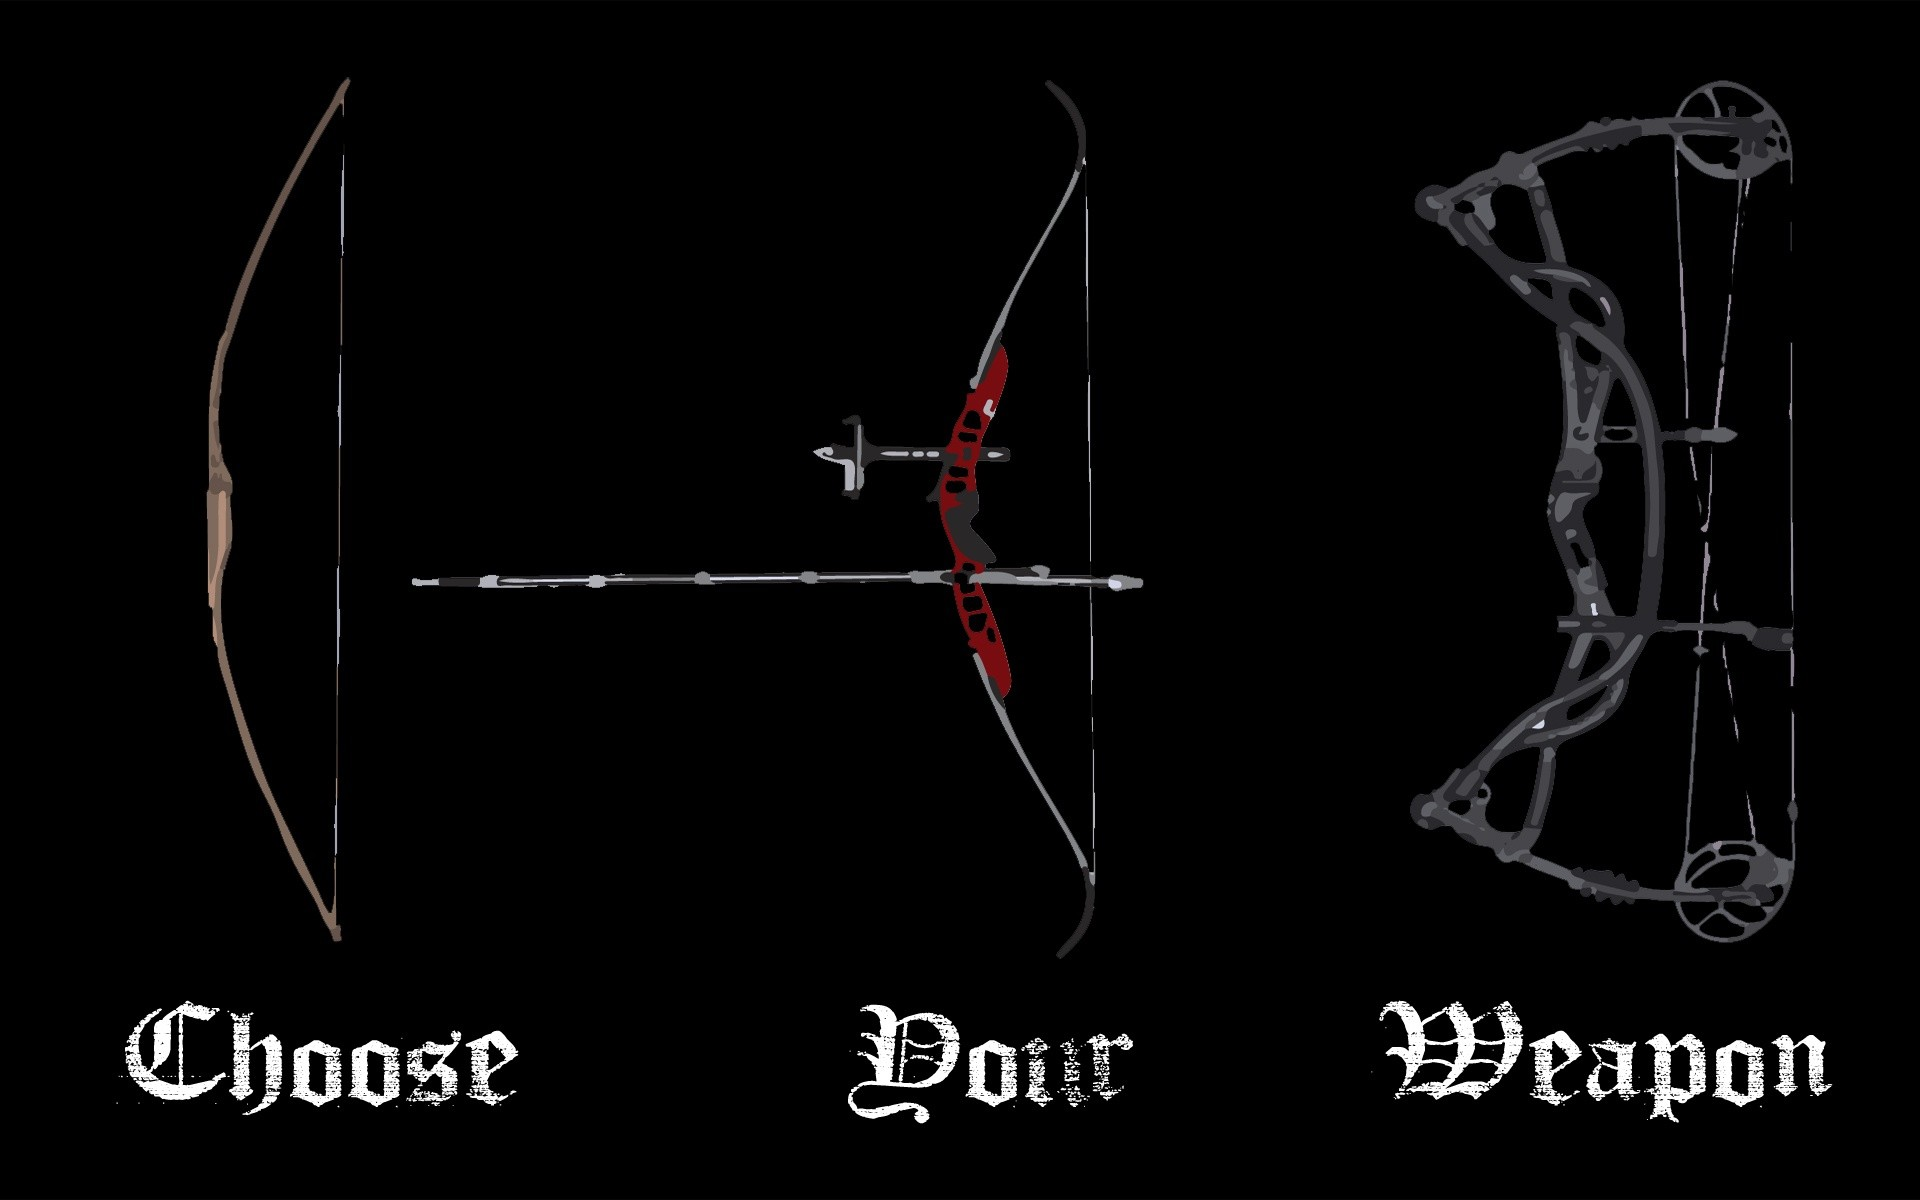 1920x1200 Archery Desktop Wallpaper.